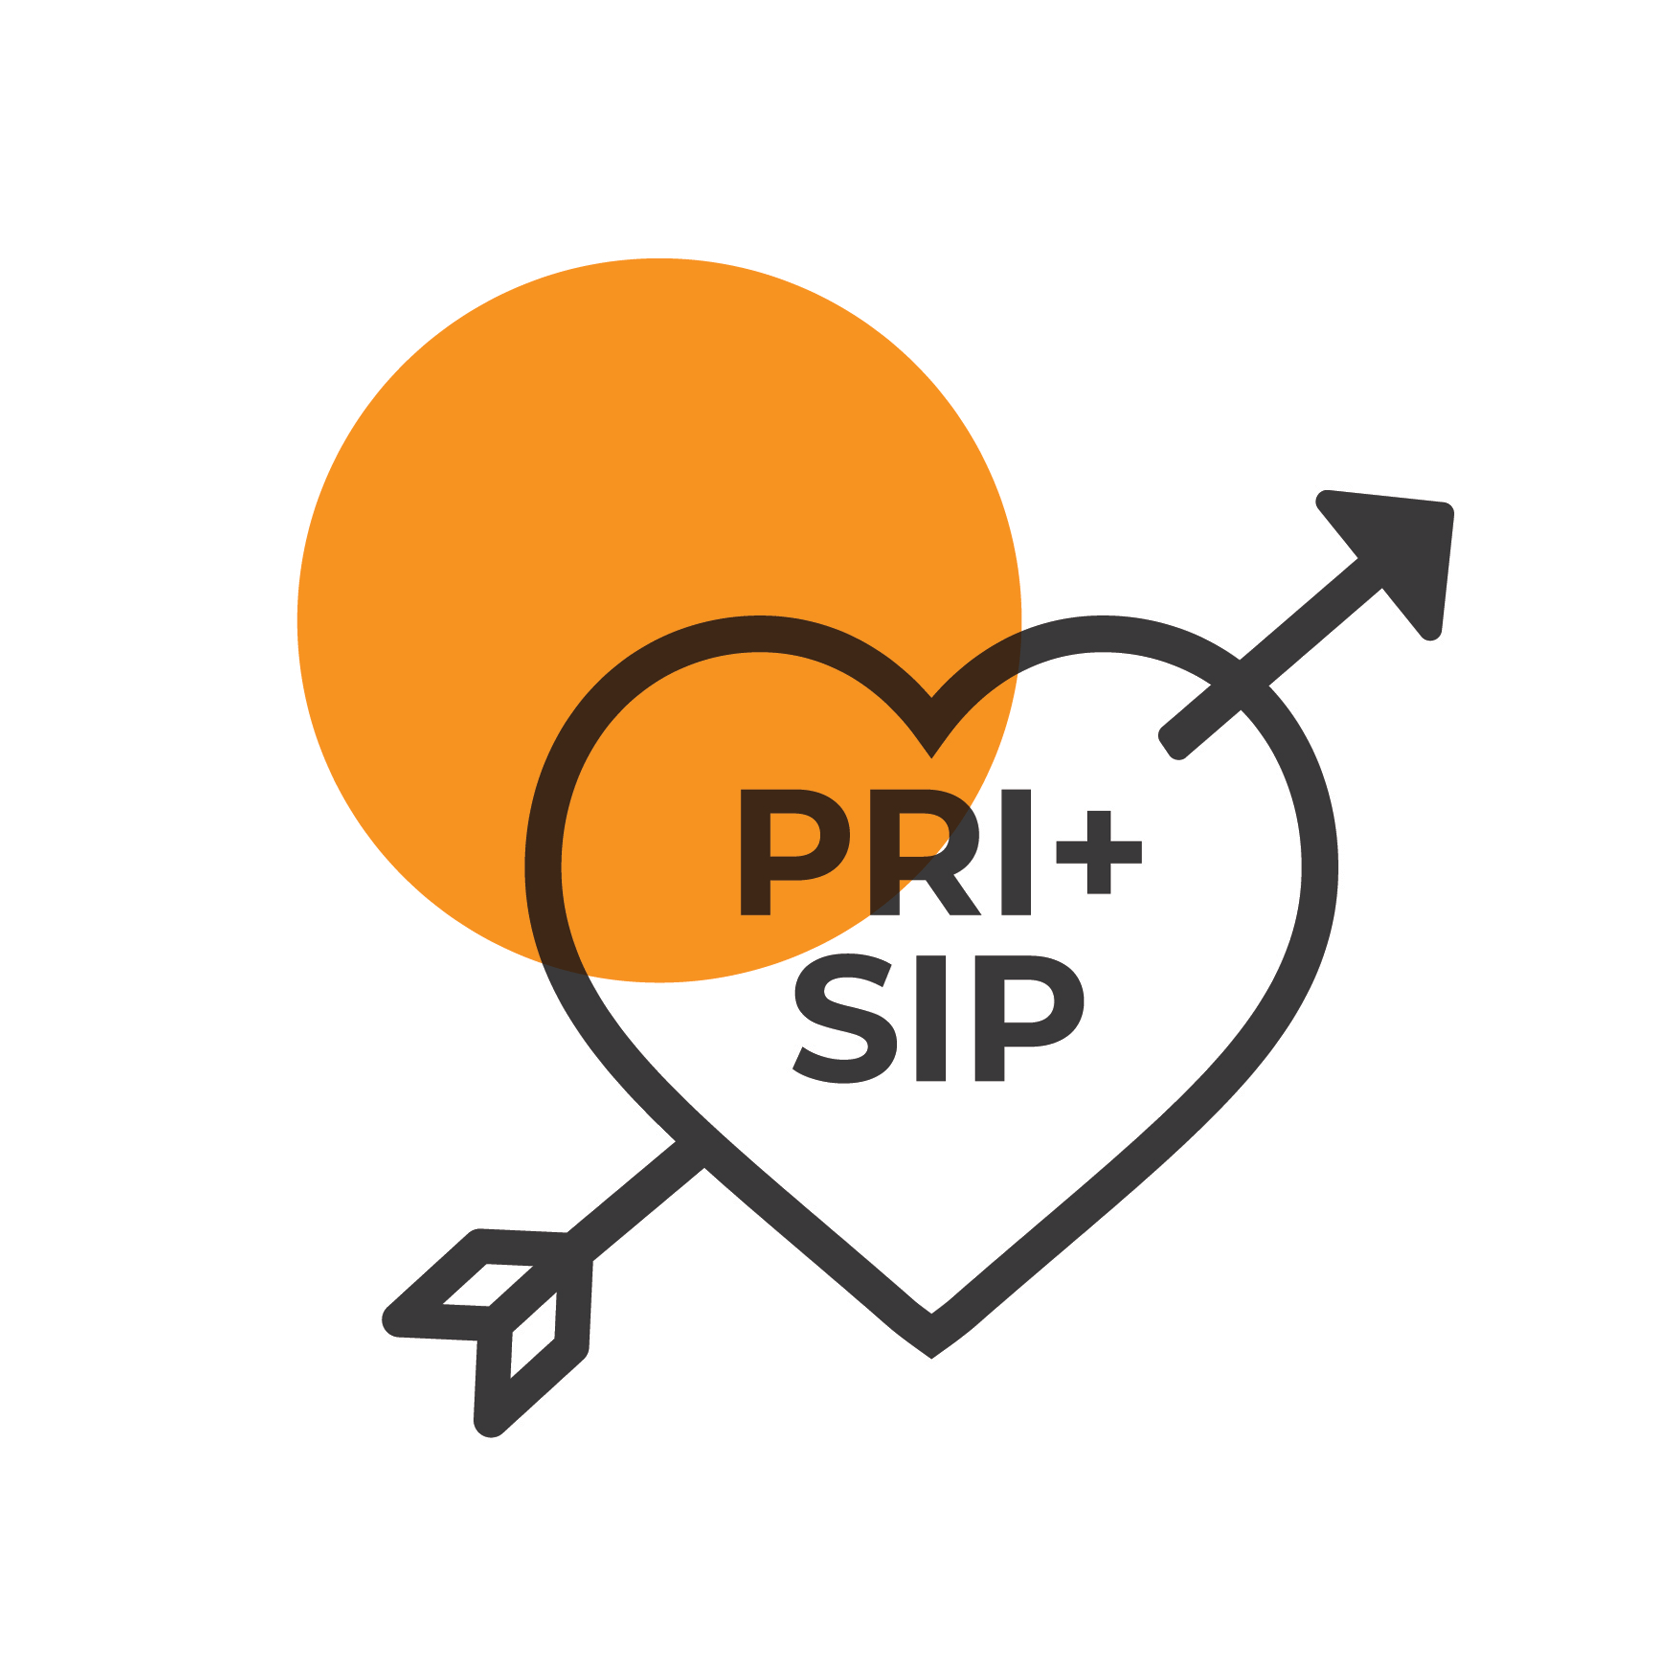 Allstream_Icon-SIP-Campaign_SIP-Heart-6-circle-4